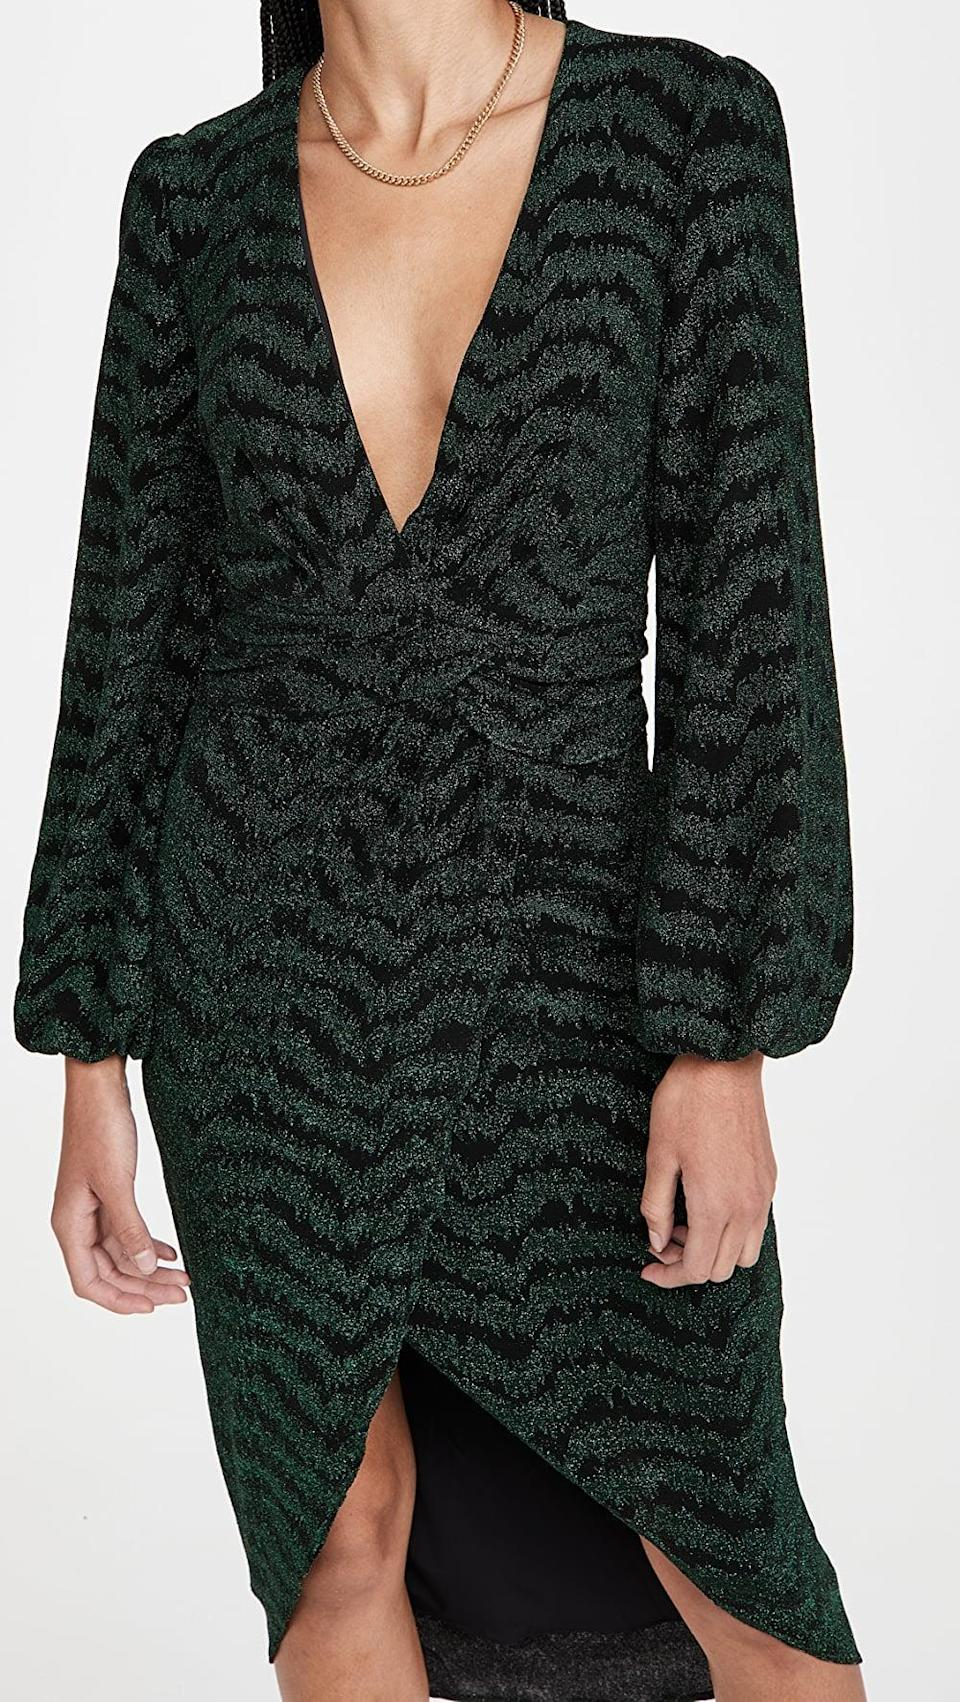 <p>This <span>Saylor Camila Dress</span> ($89, originally $297) is so effortlessly elegant. We love the deep V cut and body-hugging profile.</p>